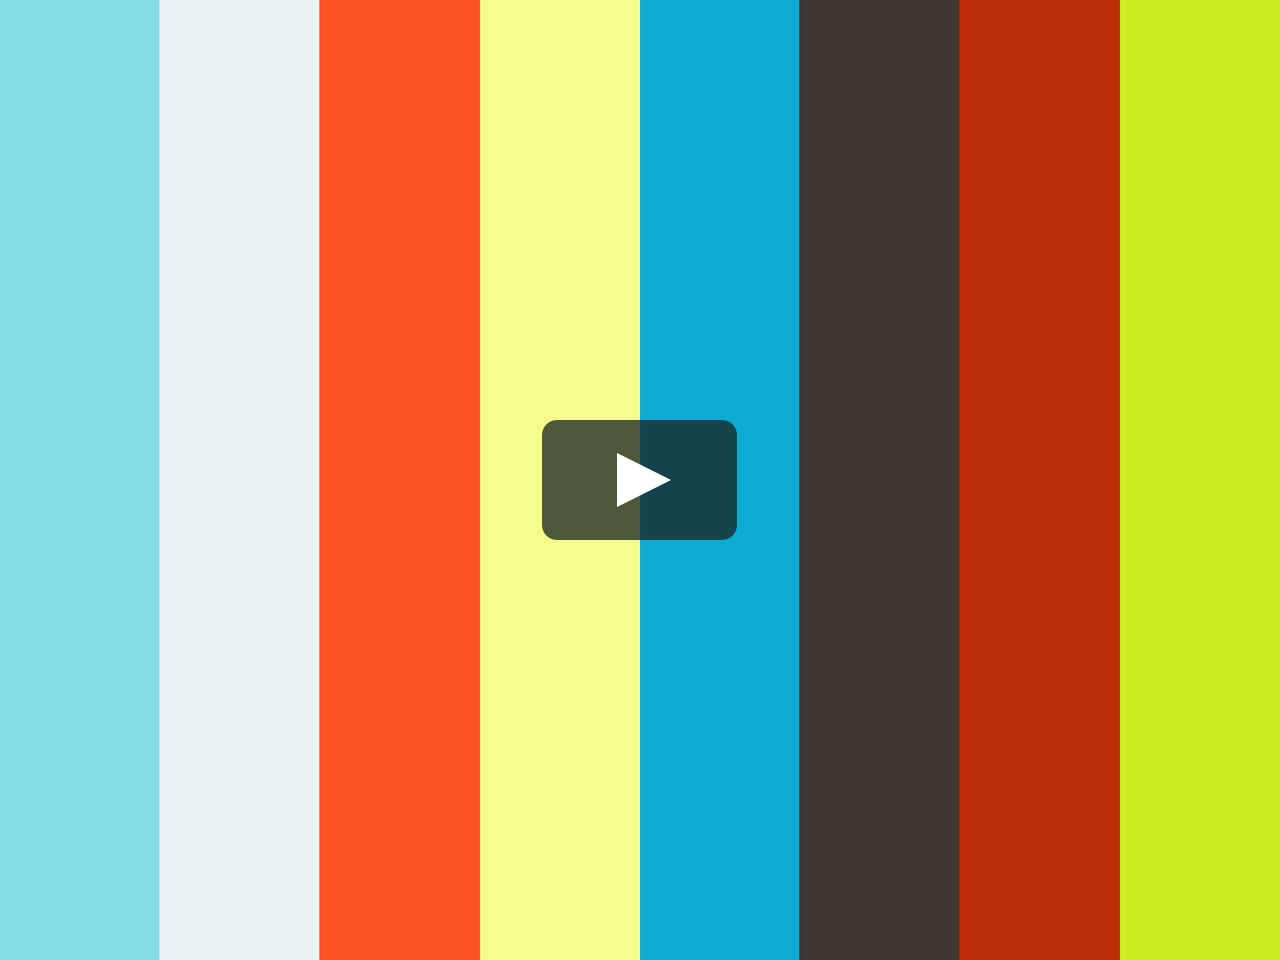 Google Voice Preview And Explanation On Vimeo